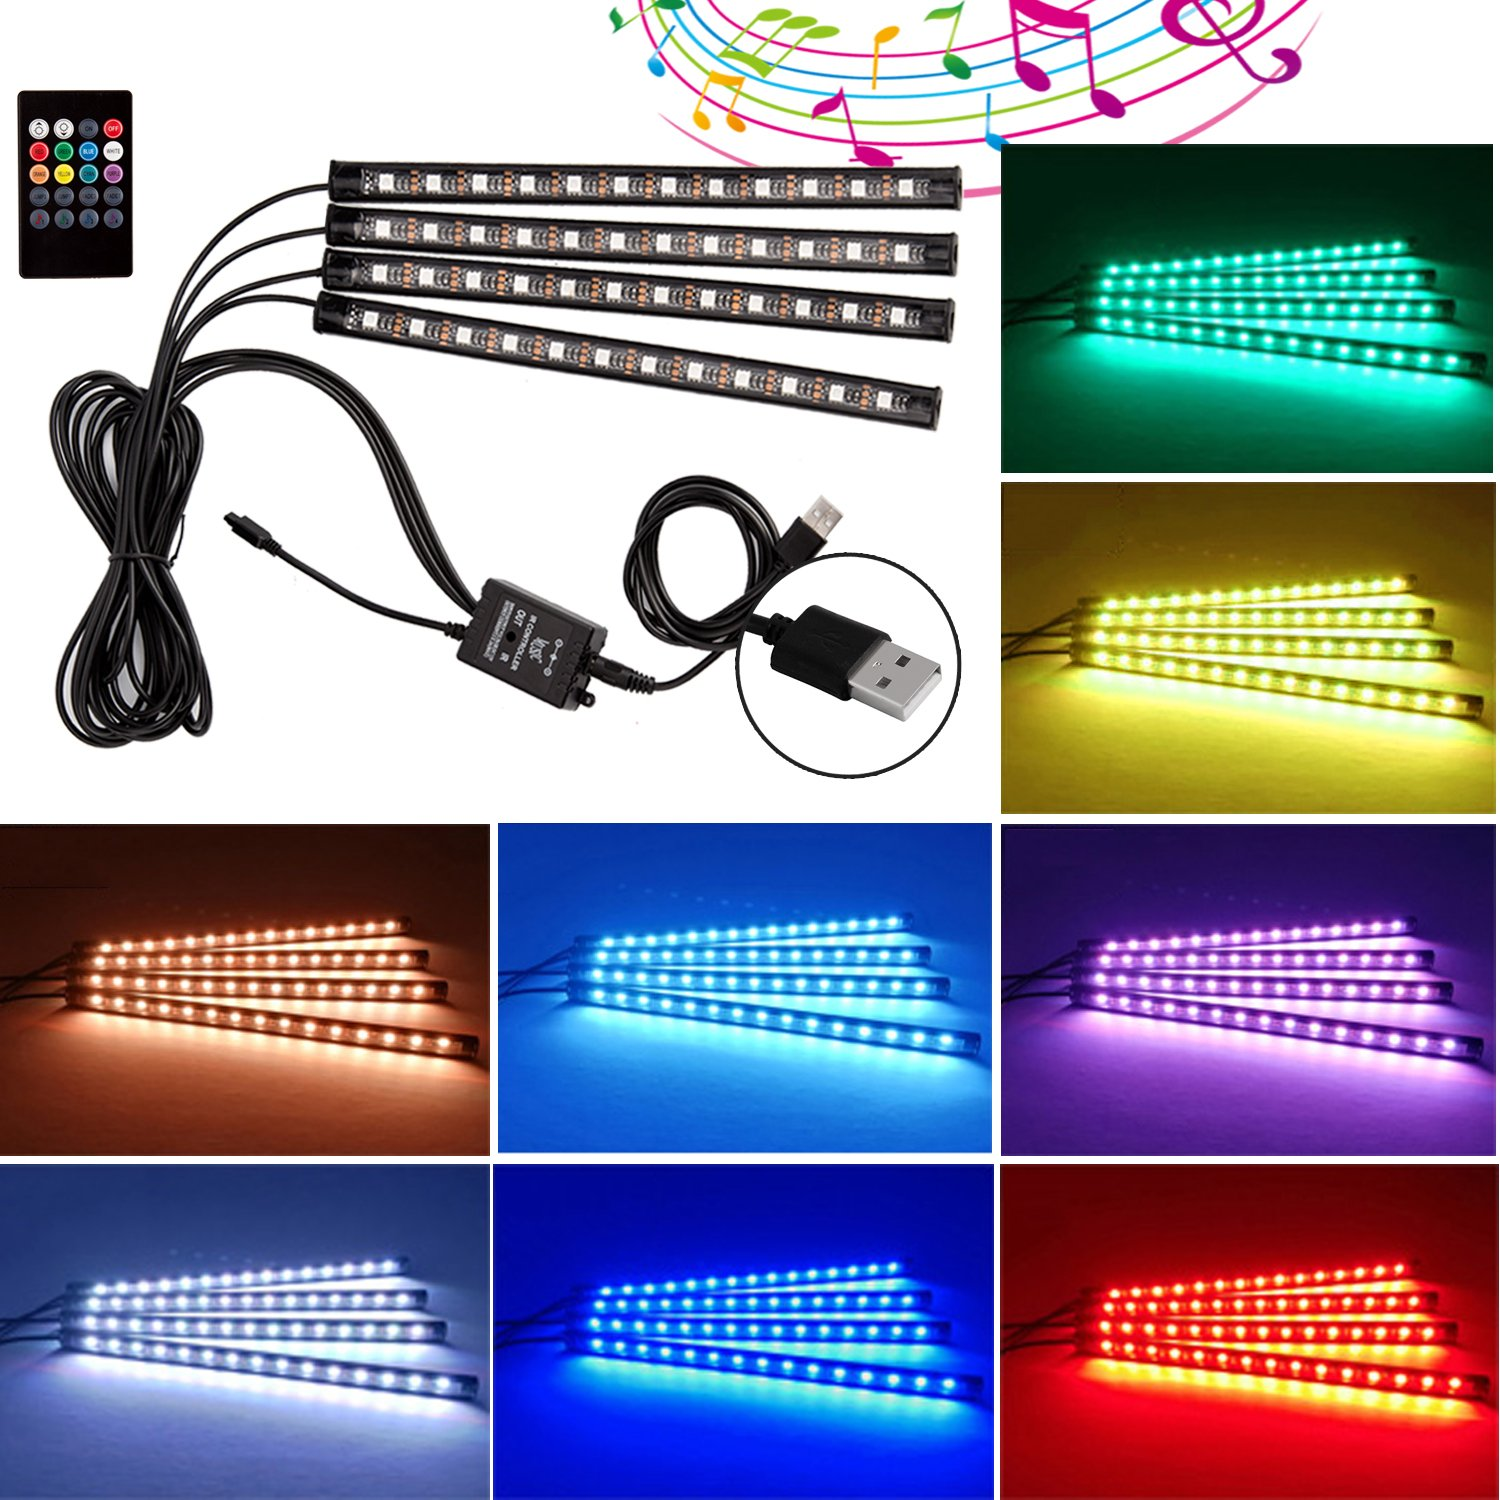 Car LED Strip Light,Savita Waterproof 4x12 LED Under Dash Lighting, Car Interior Multicolor Lights with Sound Active Function and Wireless Remote Control for Car Auto Decoration,DC 12V